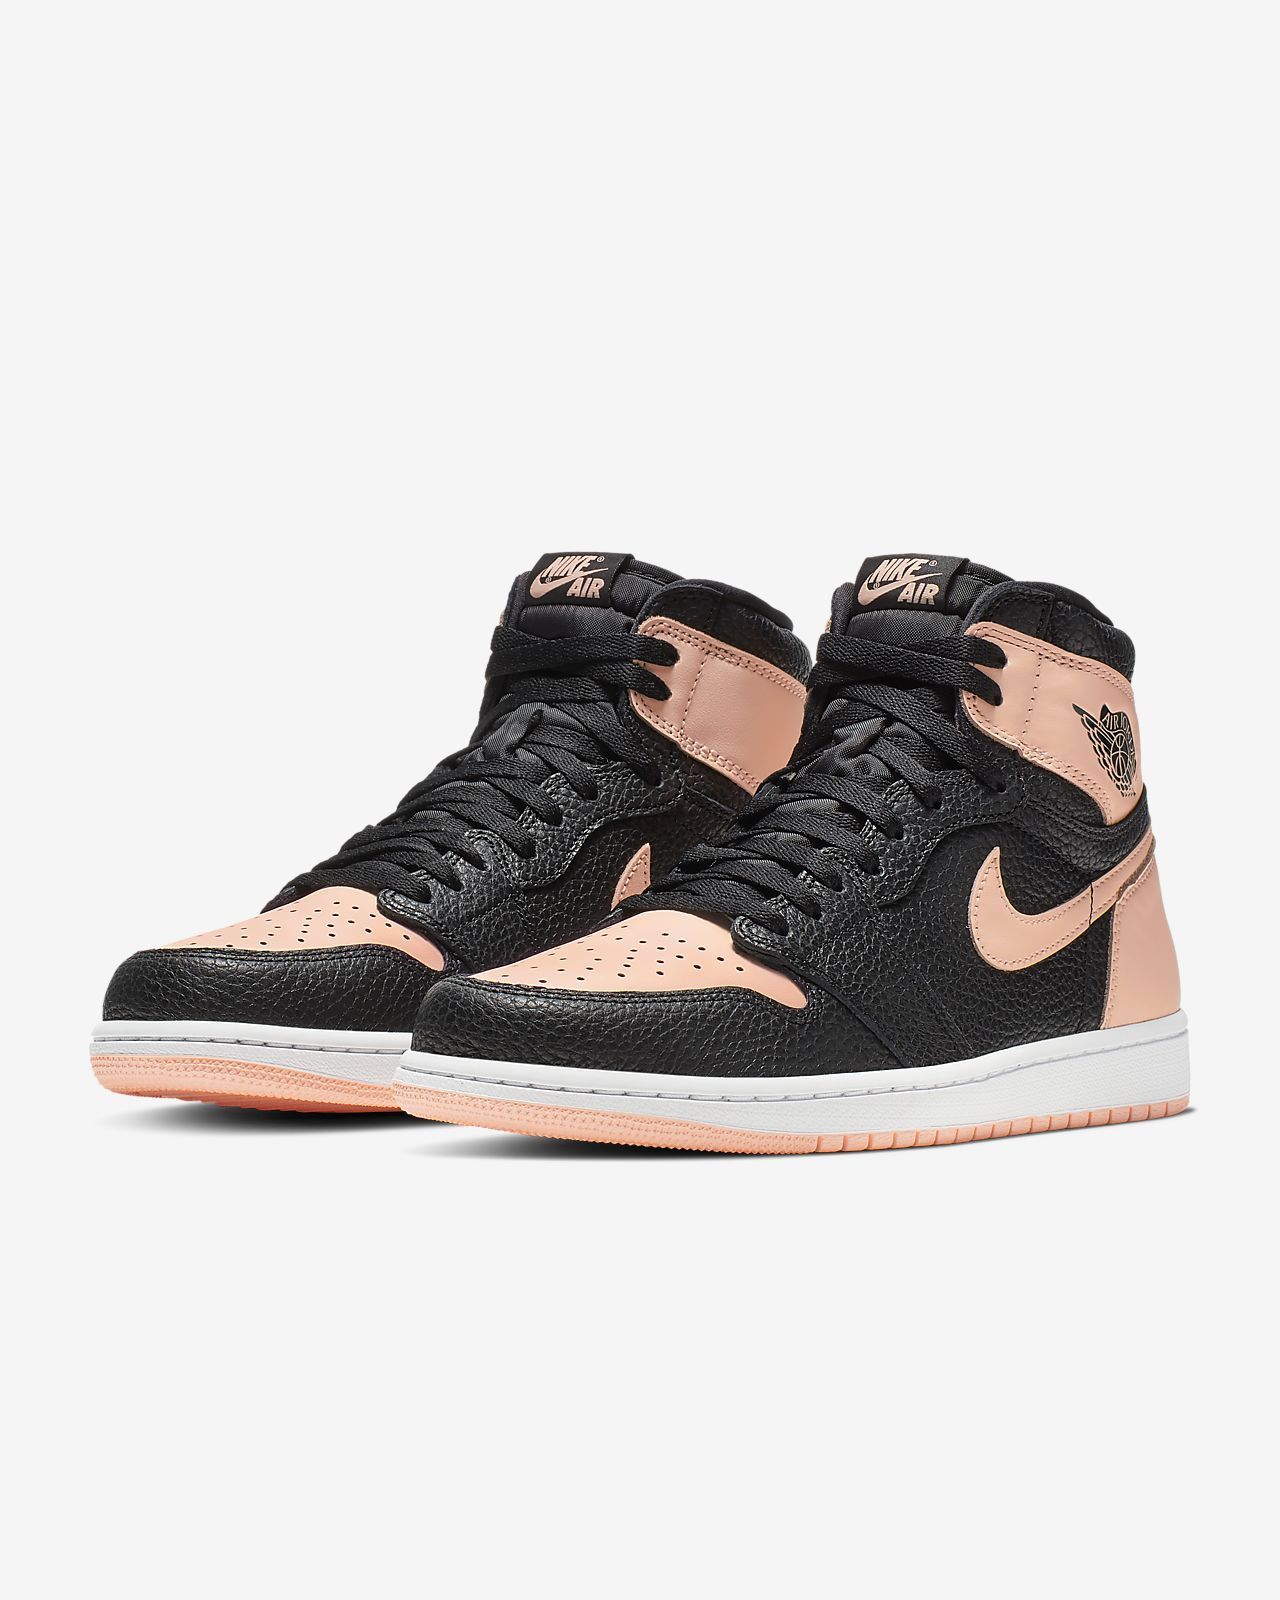 4ffc89b13c95 Air Jordan 1 Retro High OG Shoe. Nike.com